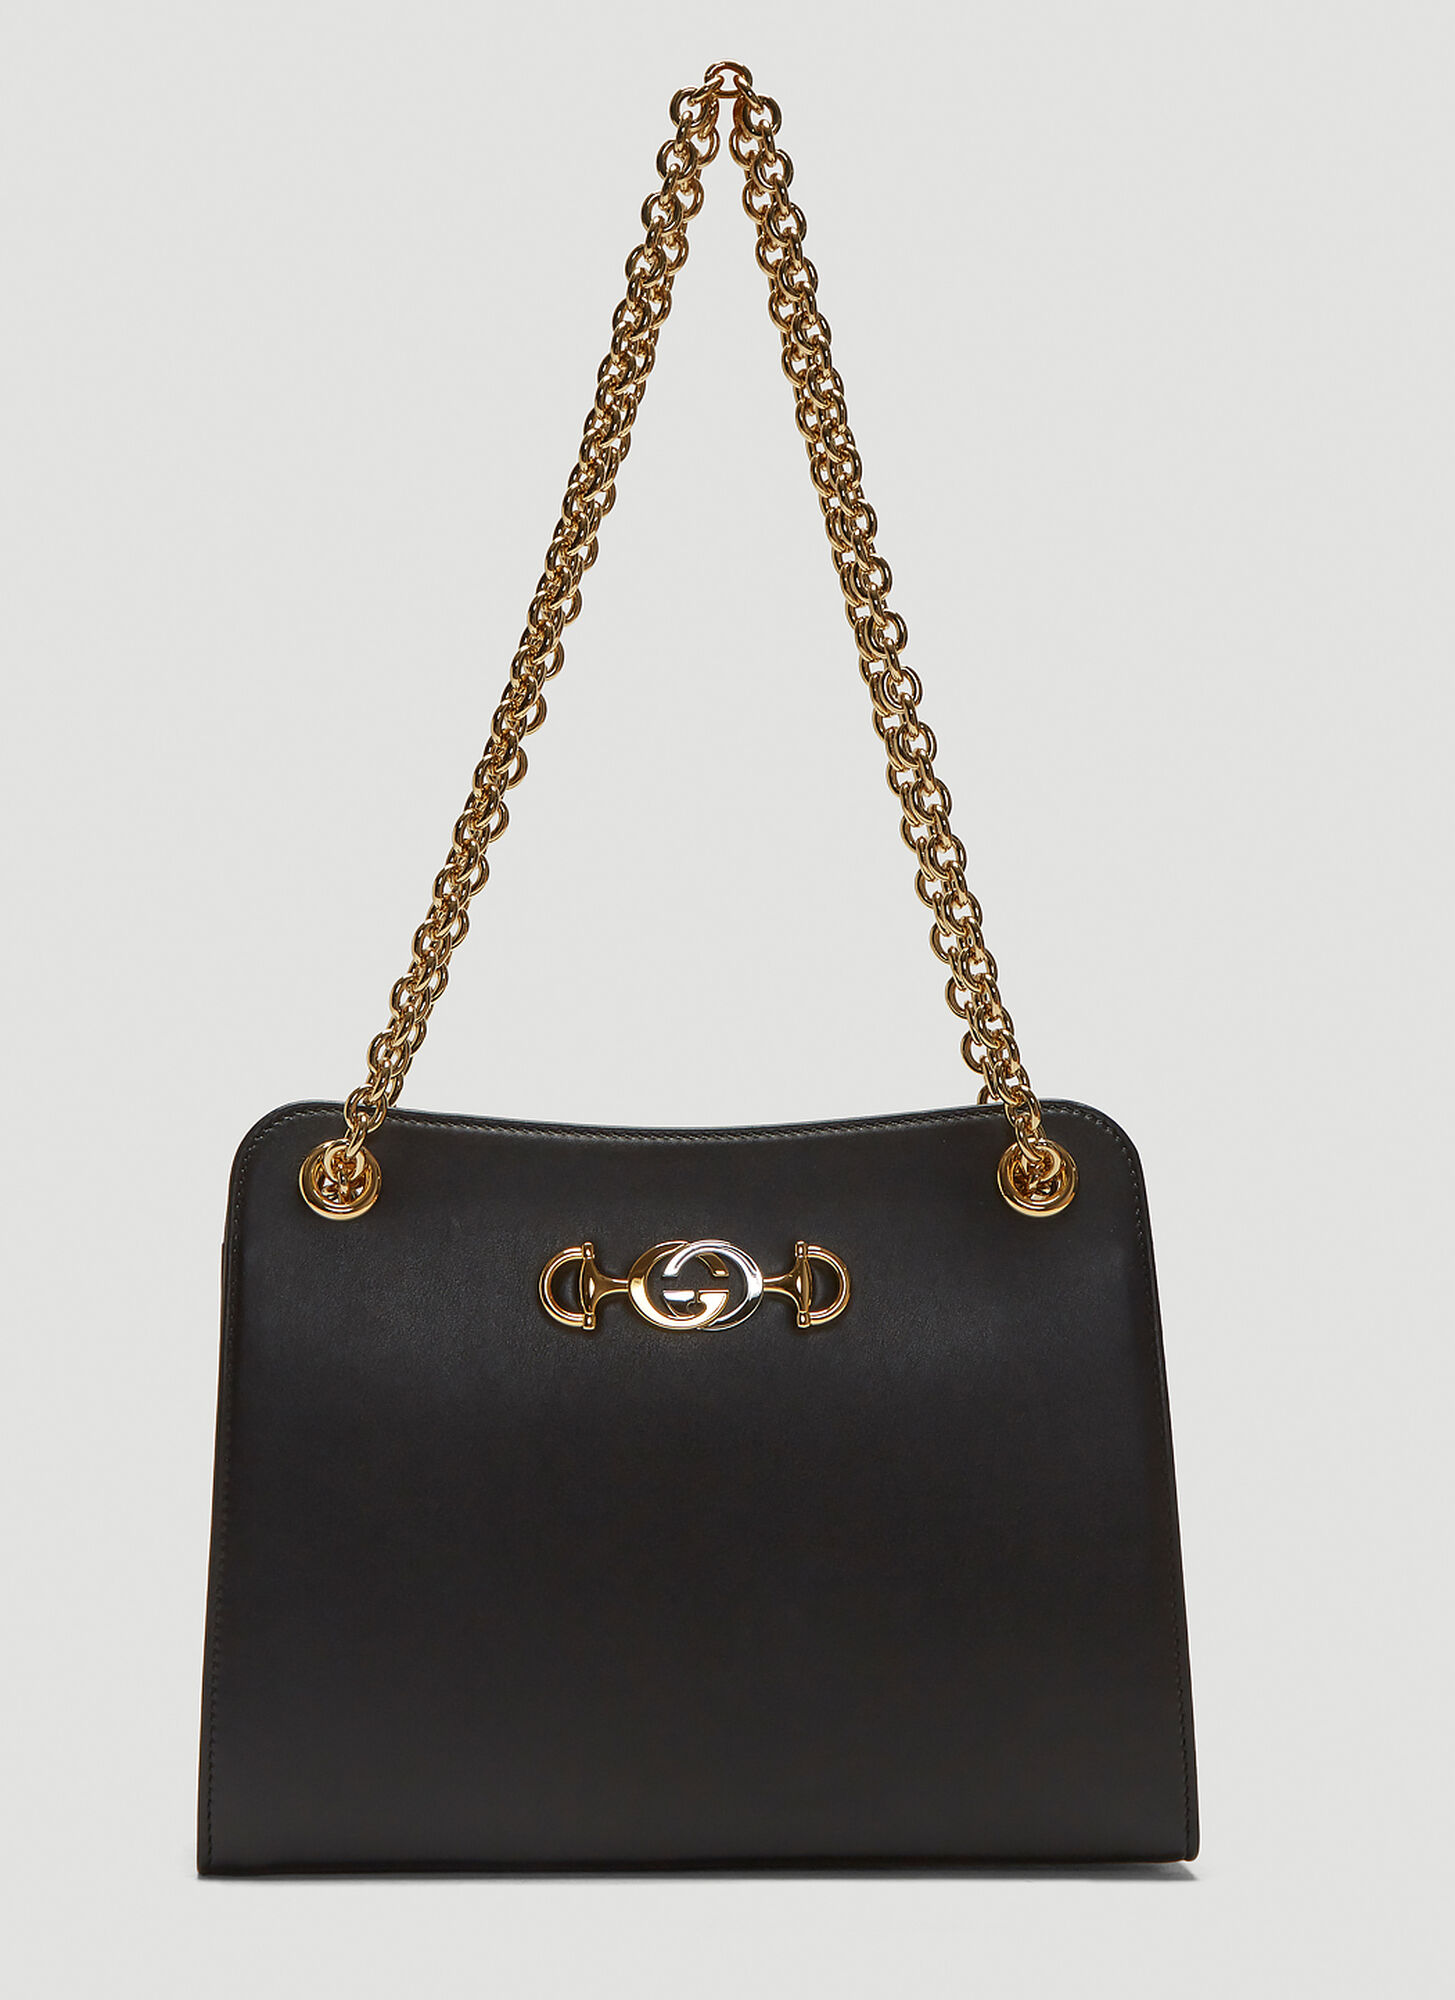 GUCCI | Gucci Zumi Leather Shoulder Bag In Black Size One Size | Goxip